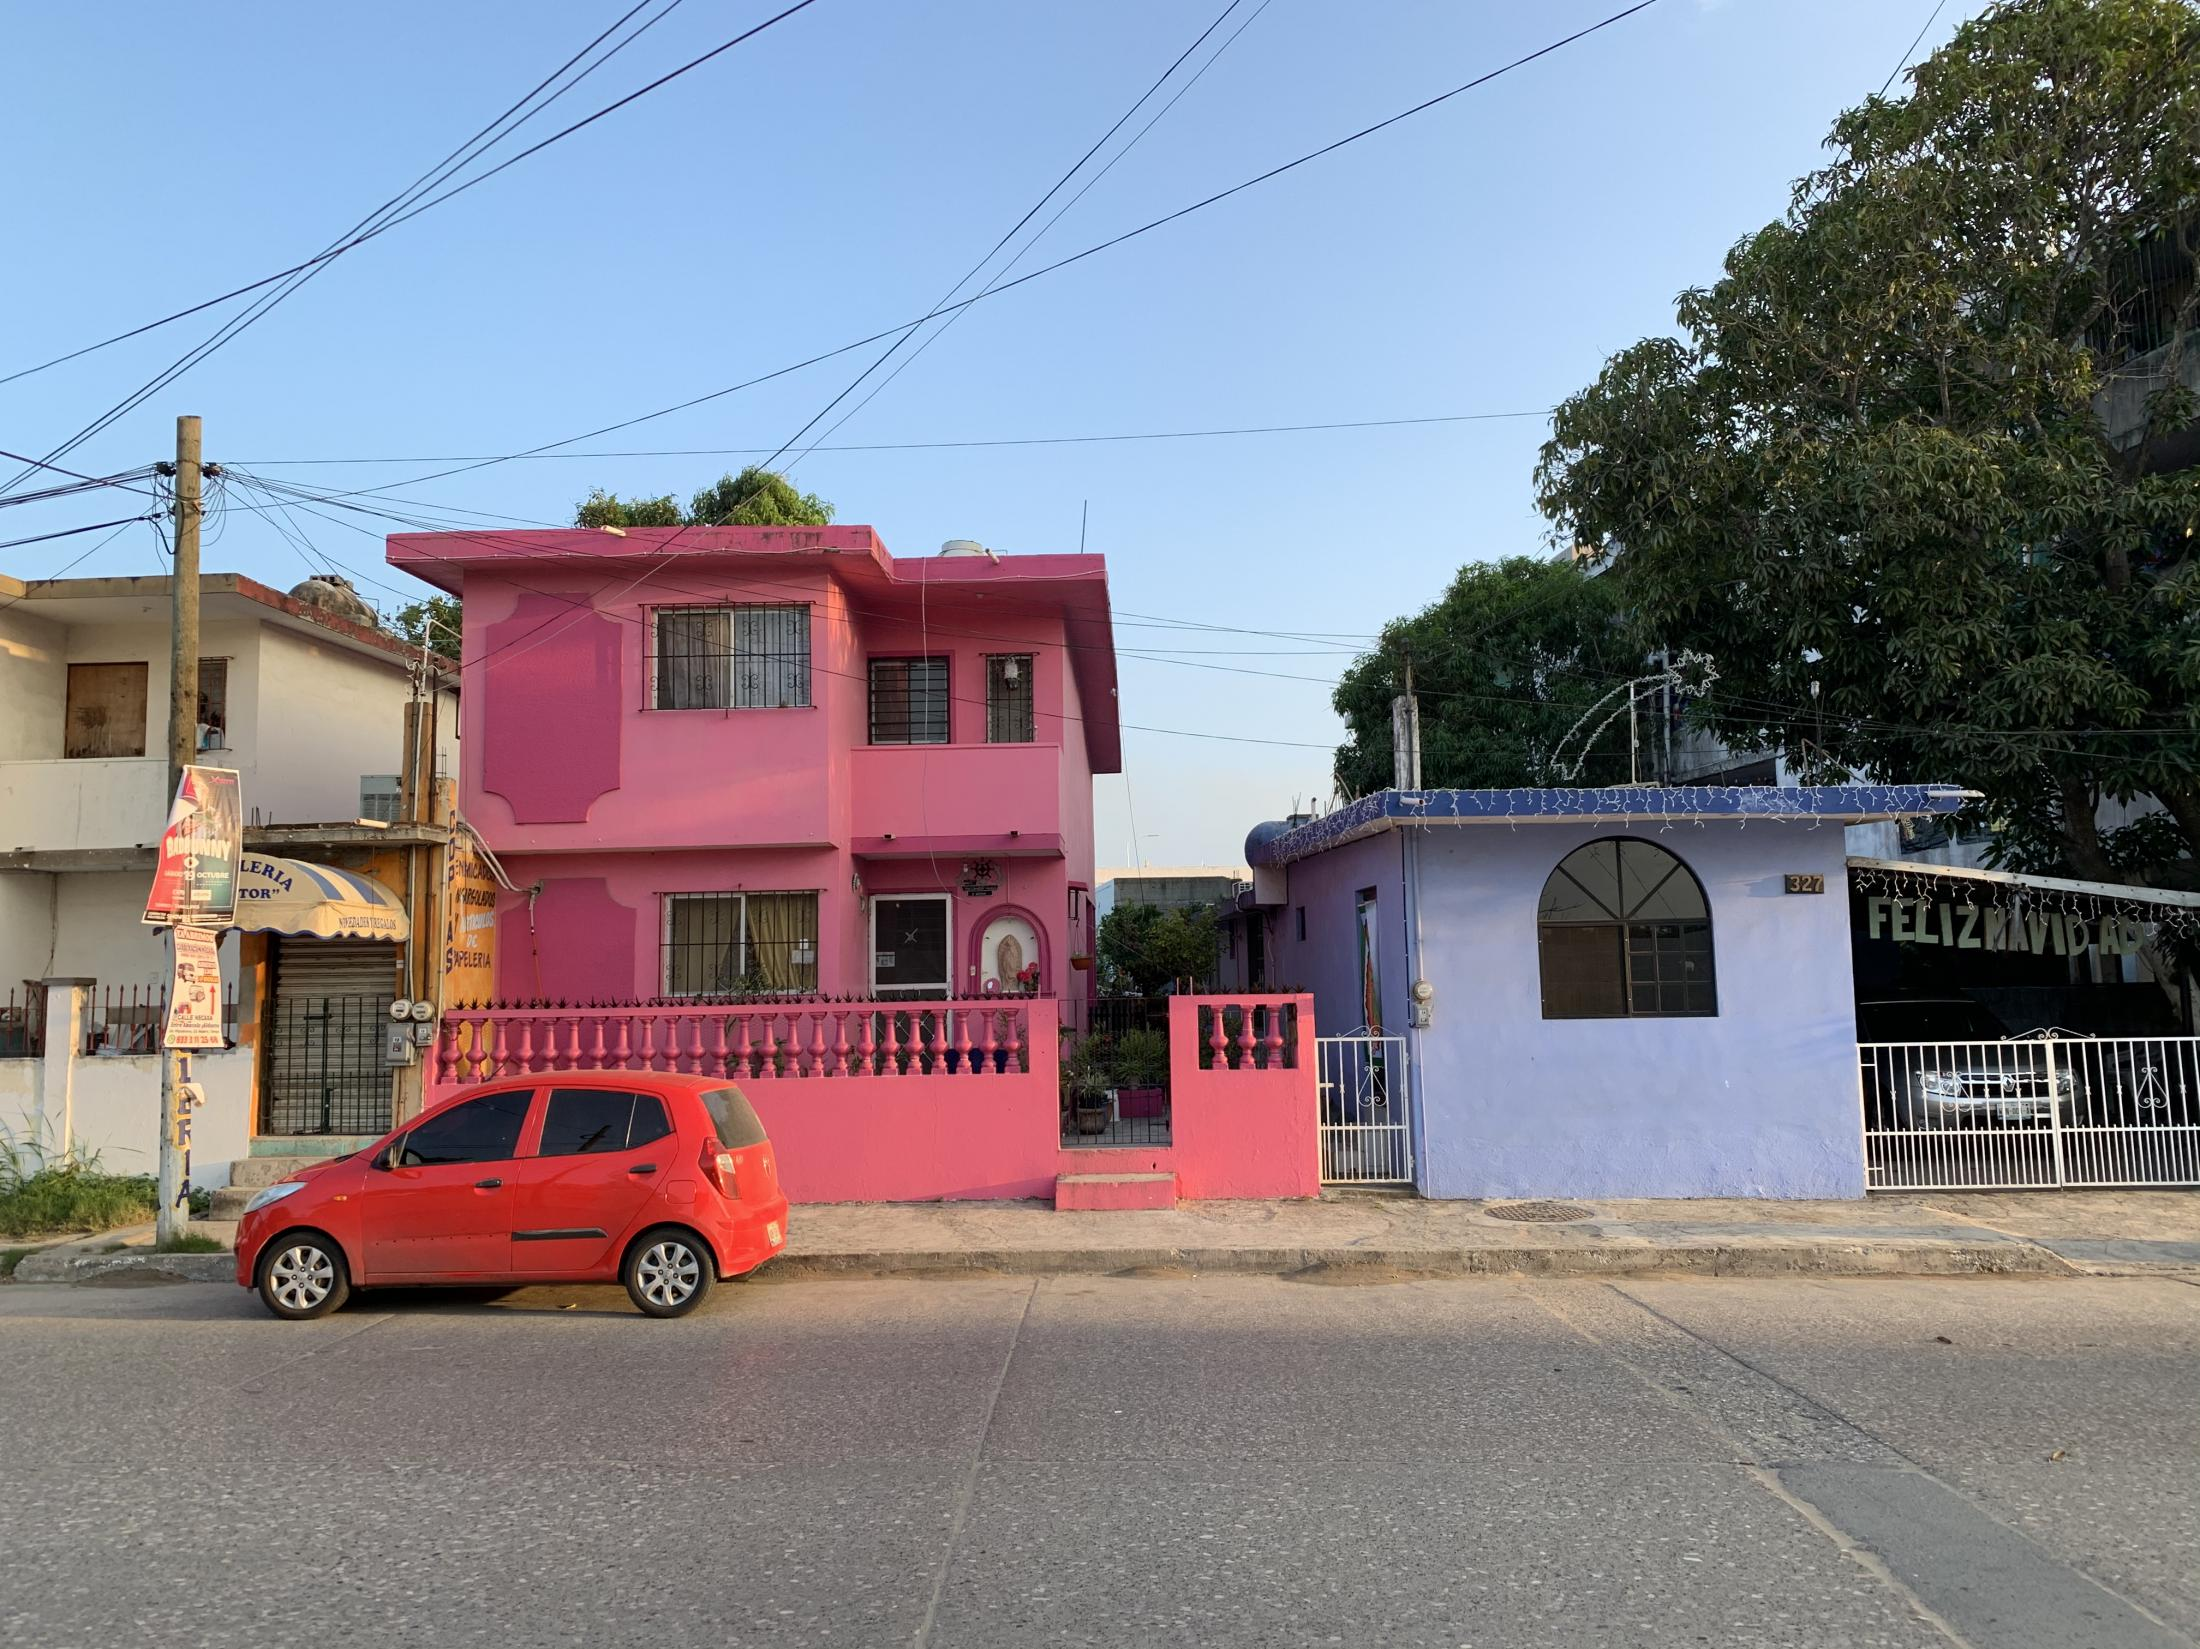 Ciudad Madero, Tamaulipas, México. 2019. Two colorful houses sit next to each other. These sort of hours are common in Mexico. I always see them on my way home coming from my girlfriend's house.